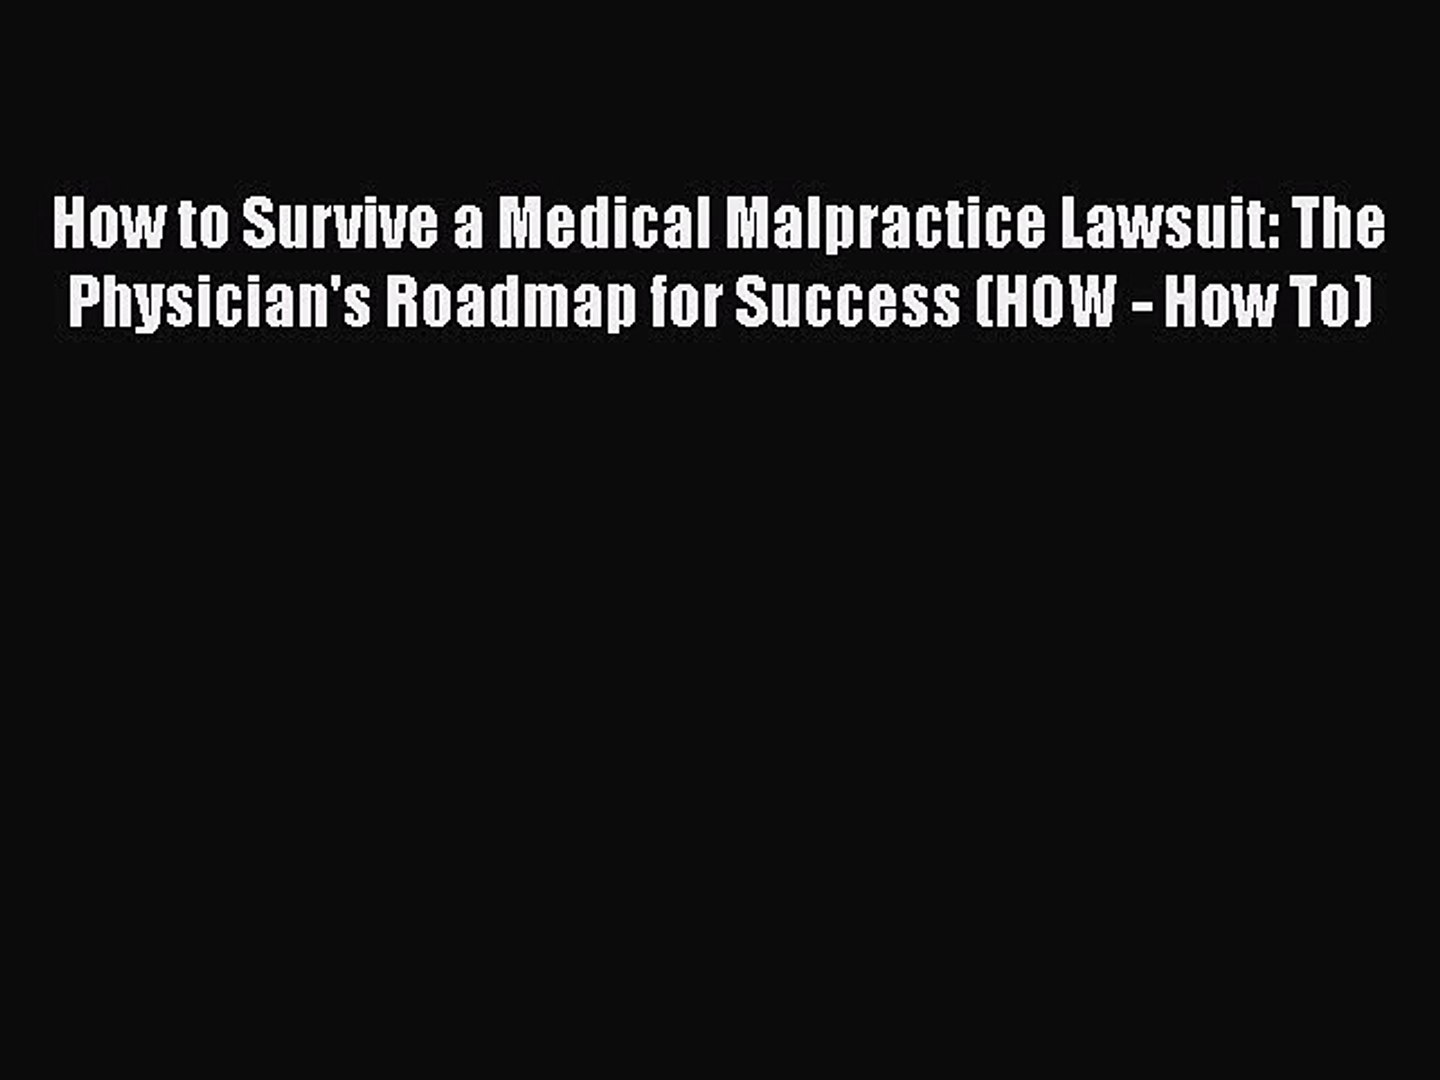 How to Survive a Medical Malpractice Lawsuit: The Physician's Roadmap for Success (HOW - How